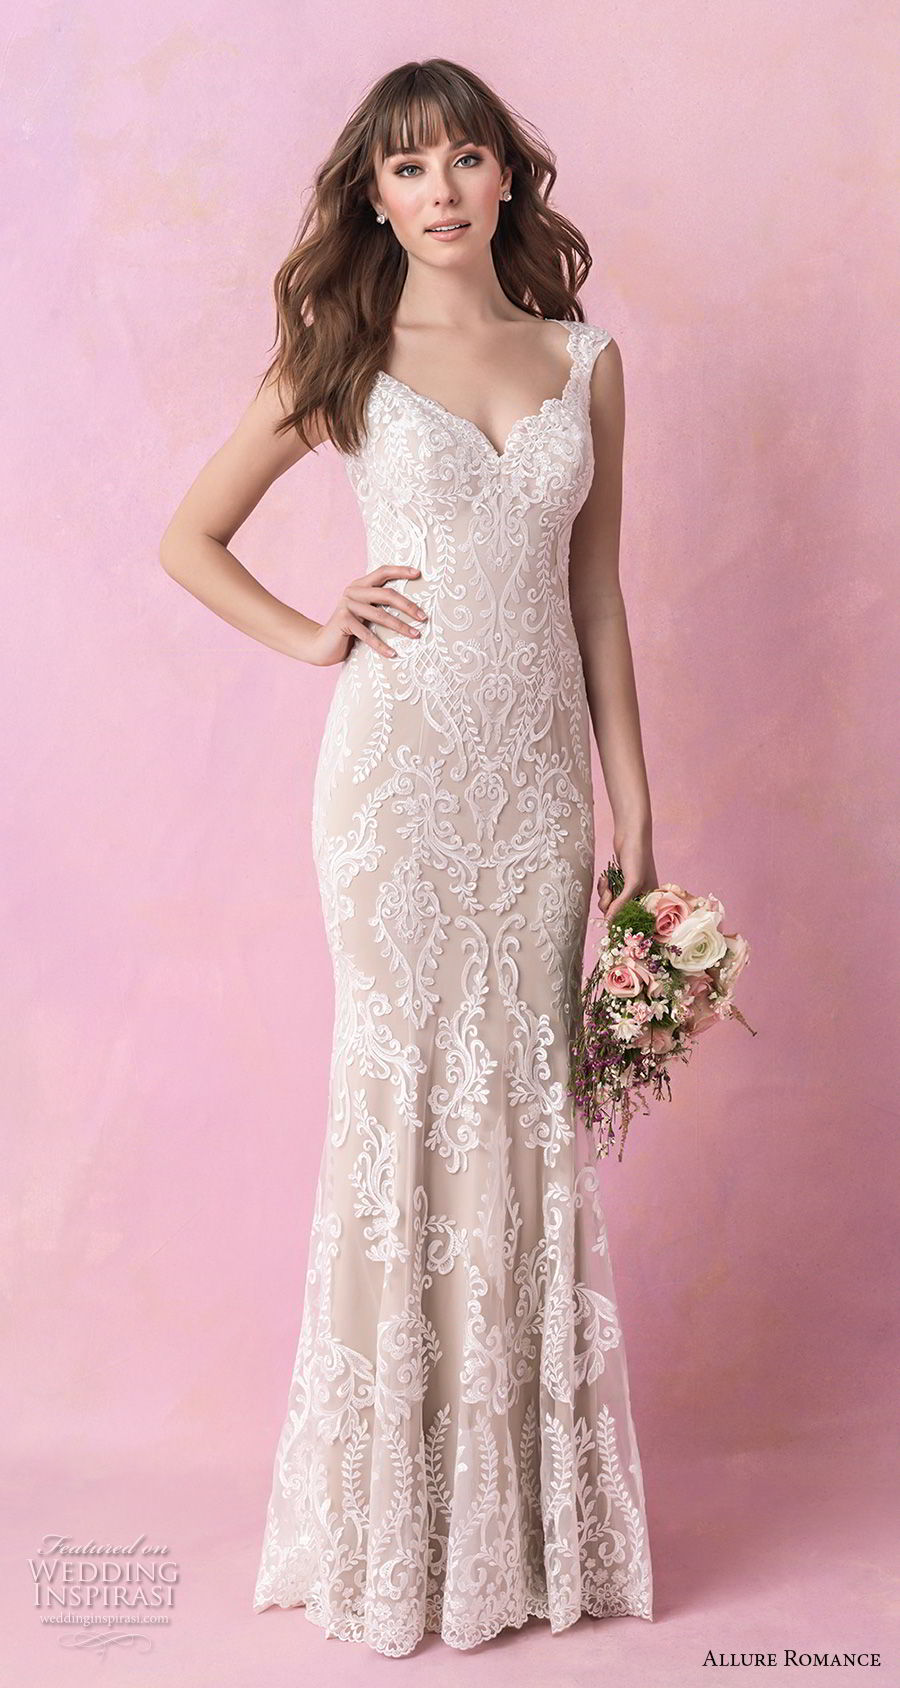 allure romance fall 2018 bridal thick strap v neck full embellishment elegant sheath wedding dress open scoop back chapel train (4) mv